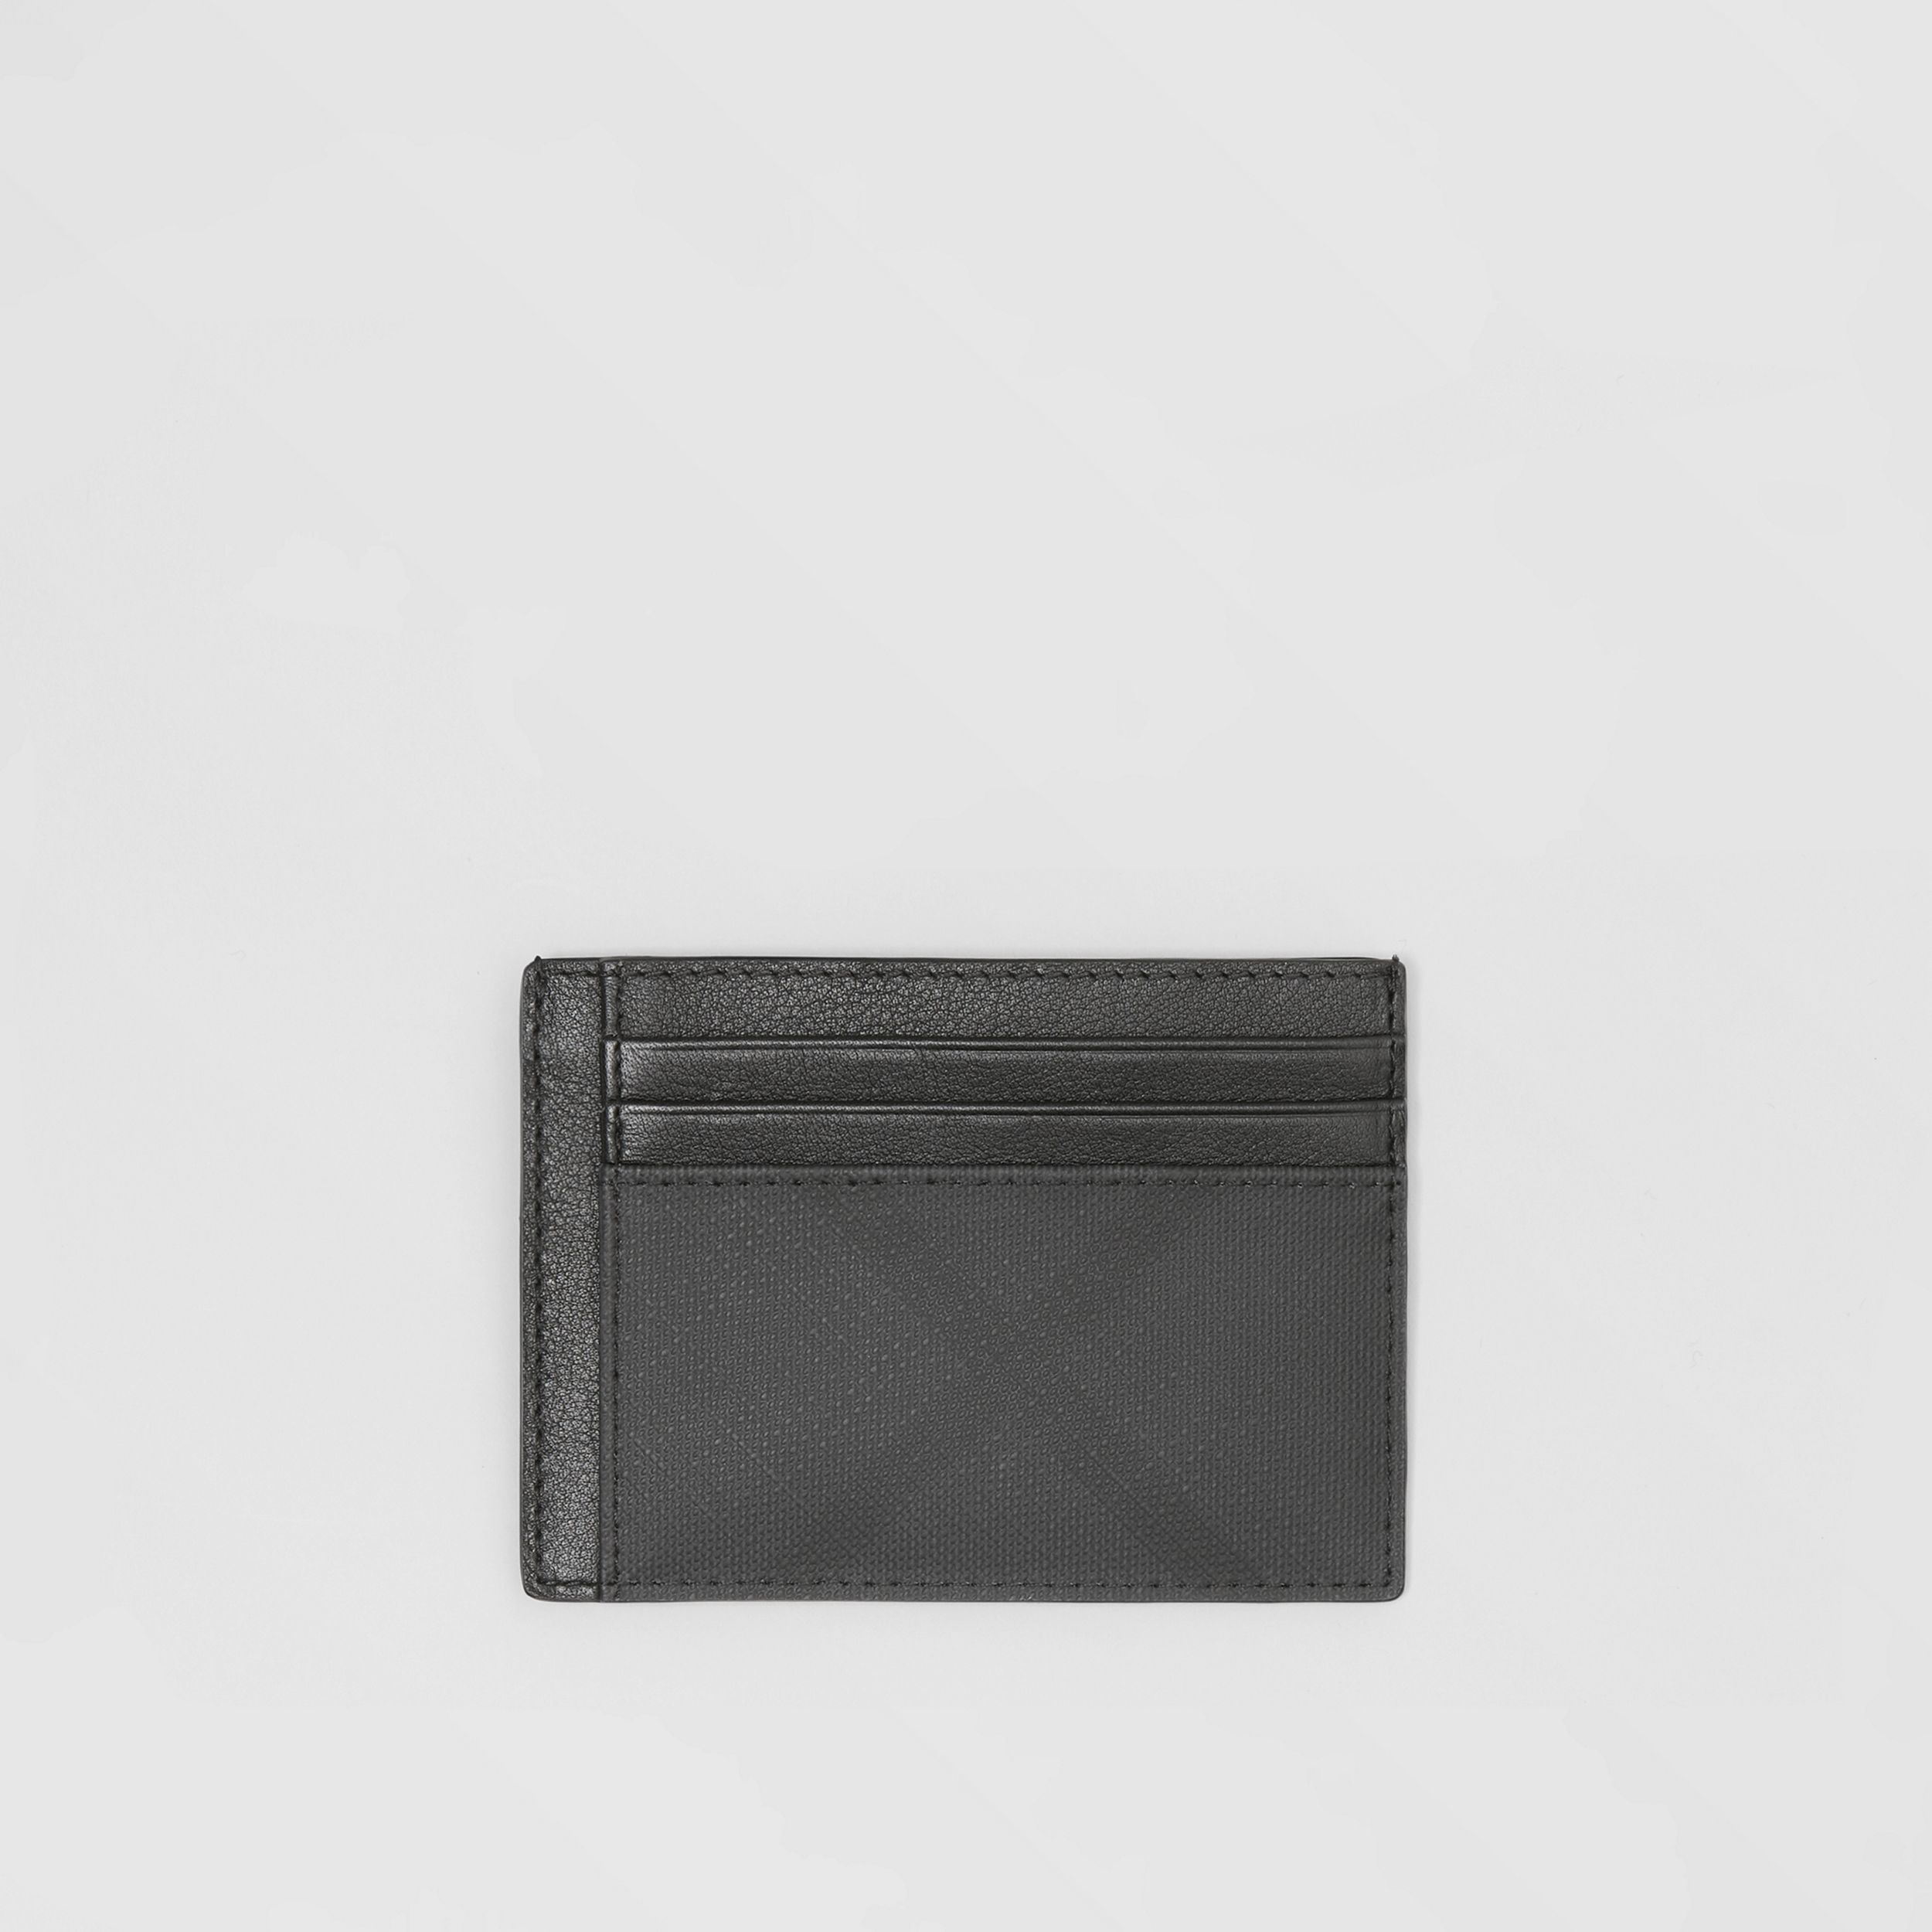 London Check and Leather Card Case in Dark Charcoal - Men | Burberry United Kingdom - 1